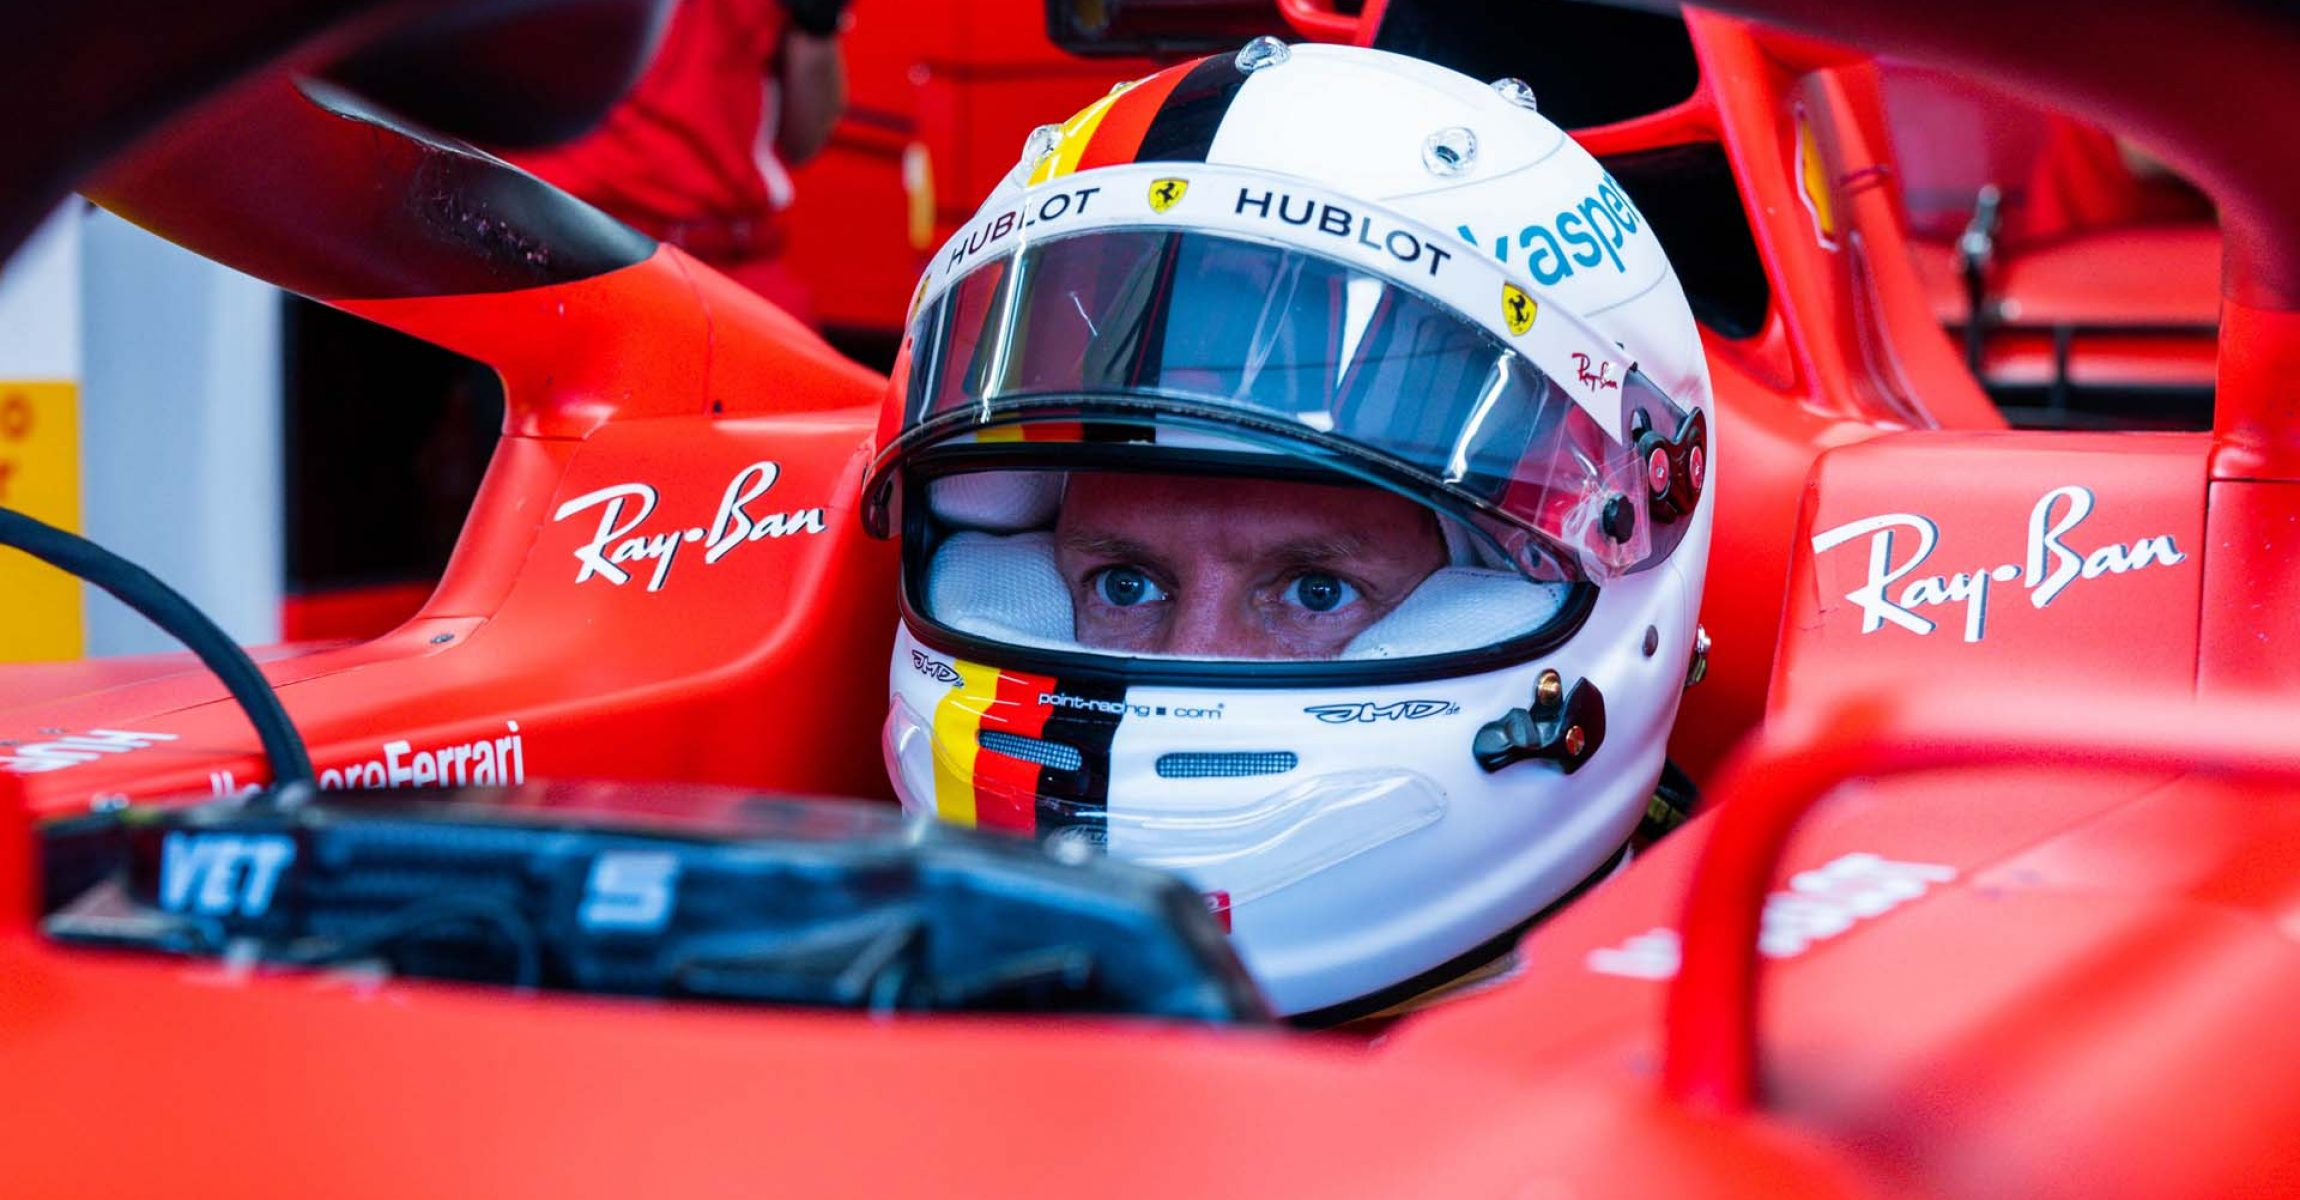 GP UNGHERIA F1/2020 - VENERDÌ 17/07/2020 credit: @Scuderia Ferrari Press Office Sebastian Vettel